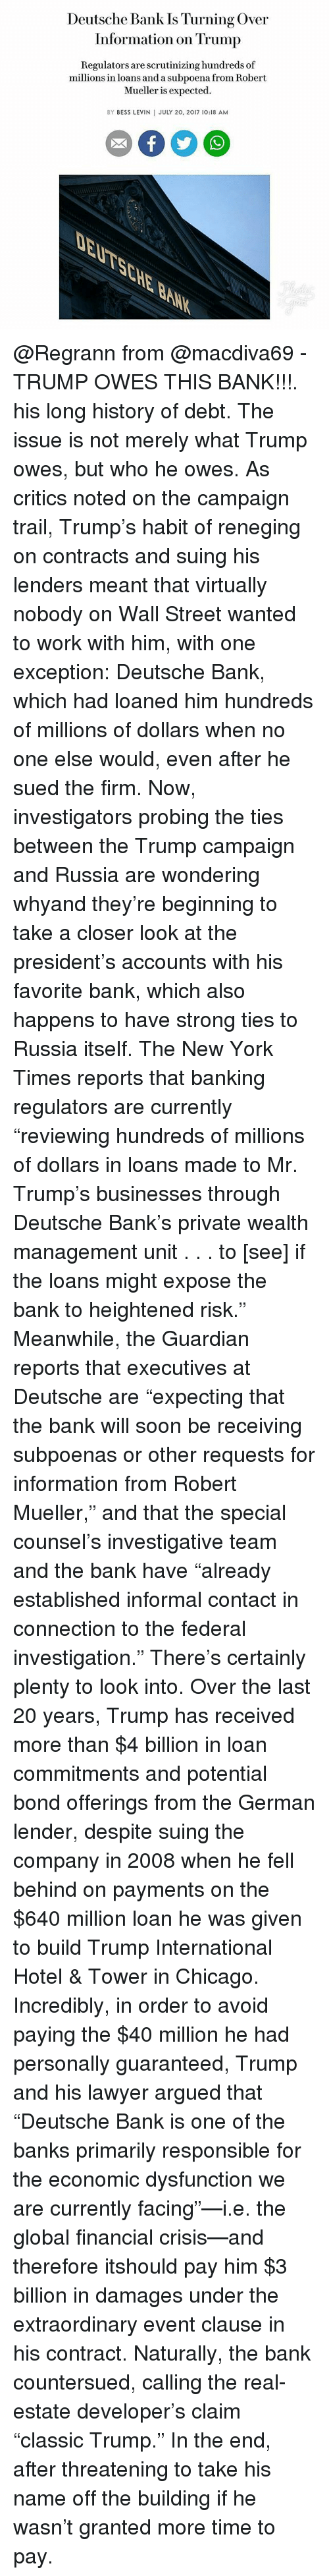 """Chicago, Lawyer, and Memes: Deutsche Bank Is Turning Over  Information on Trump  Regulators are scrutinizing hundreds of  millions in loans and a subpoena from Robert  Mueller is expected.  BY BESS LEVIN JULY 20, 2017 10:18 AM  EL @Regrann from @macdiva69 - TRUMP OWES THIS BANK!!!. his long history of debt. The issue is not merely what Trump owes, but who he owes. As critics noted on the campaign trail, Trump's habit of reneging on contracts and suing his lenders meant that virtually nobody on Wall Street wanted to work with him, with one exception: Deutsche Bank, which had loaned him hundreds of millions of dollars when no one else would, even after he sued the firm. Now, investigators probing the ties between the Trump campaign and Russia are wondering whyand they're beginning to take a closer look at the president's accounts with his favorite bank, which also happens to have strong ties to Russia itself. The New York Times reports that banking regulators are currently """"reviewing hundreds of millions of dollars in loans made to Mr. Trump's businesses through Deutsche Bank's private wealth management unit . . . to [see] if the loans might expose the bank to heightened risk."""" Meanwhile, the Guardian reports that executives at Deutsche are """"expecting that the bank will soon be receiving subpoenas or other requests for information from Robert Mueller,"""" and that the special counsel's investigative team and the bank have """"already established informal contact in connection to the federal investigation."""" There's certainly plenty to look into. Over the last 20 years, Trump has received more than $4 billion in loan commitments and potential bond offerings from the German lender, despite suing the company in 2008 when he fell behind on payments on the $640 million loan he was given to build Trump International Hotel & Tower in Chicago. Incredibly, in order to avoid paying the $40 million he had personally guaranteed, Trump and his lawyer argued that """"Deutsche Bank is one of """